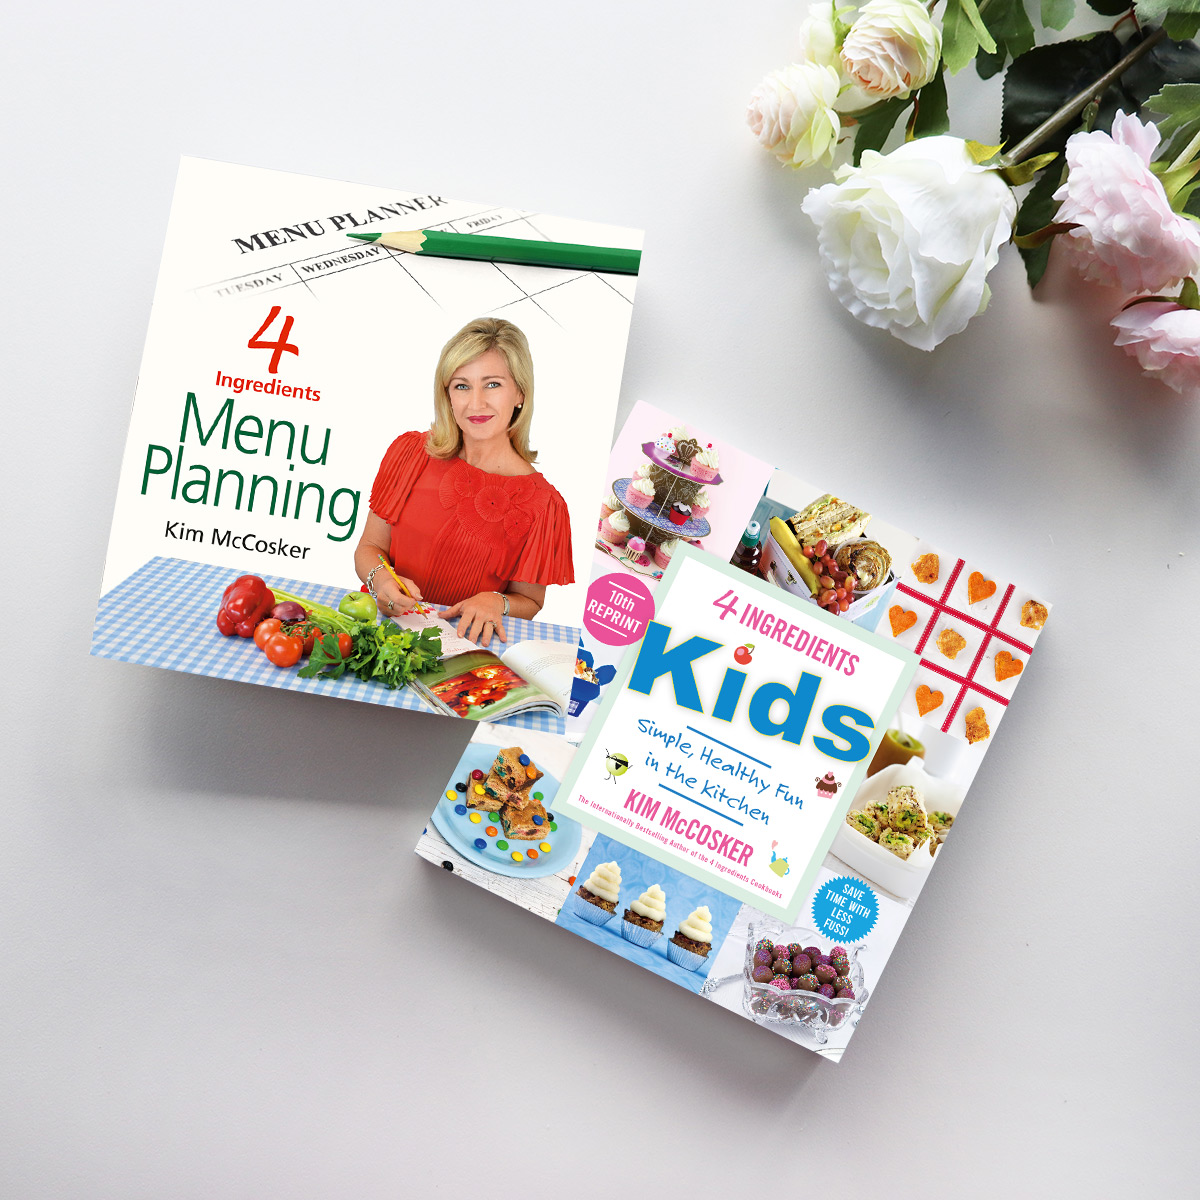 4 Ingredients Kids & 4 Ingredients Menu Planning